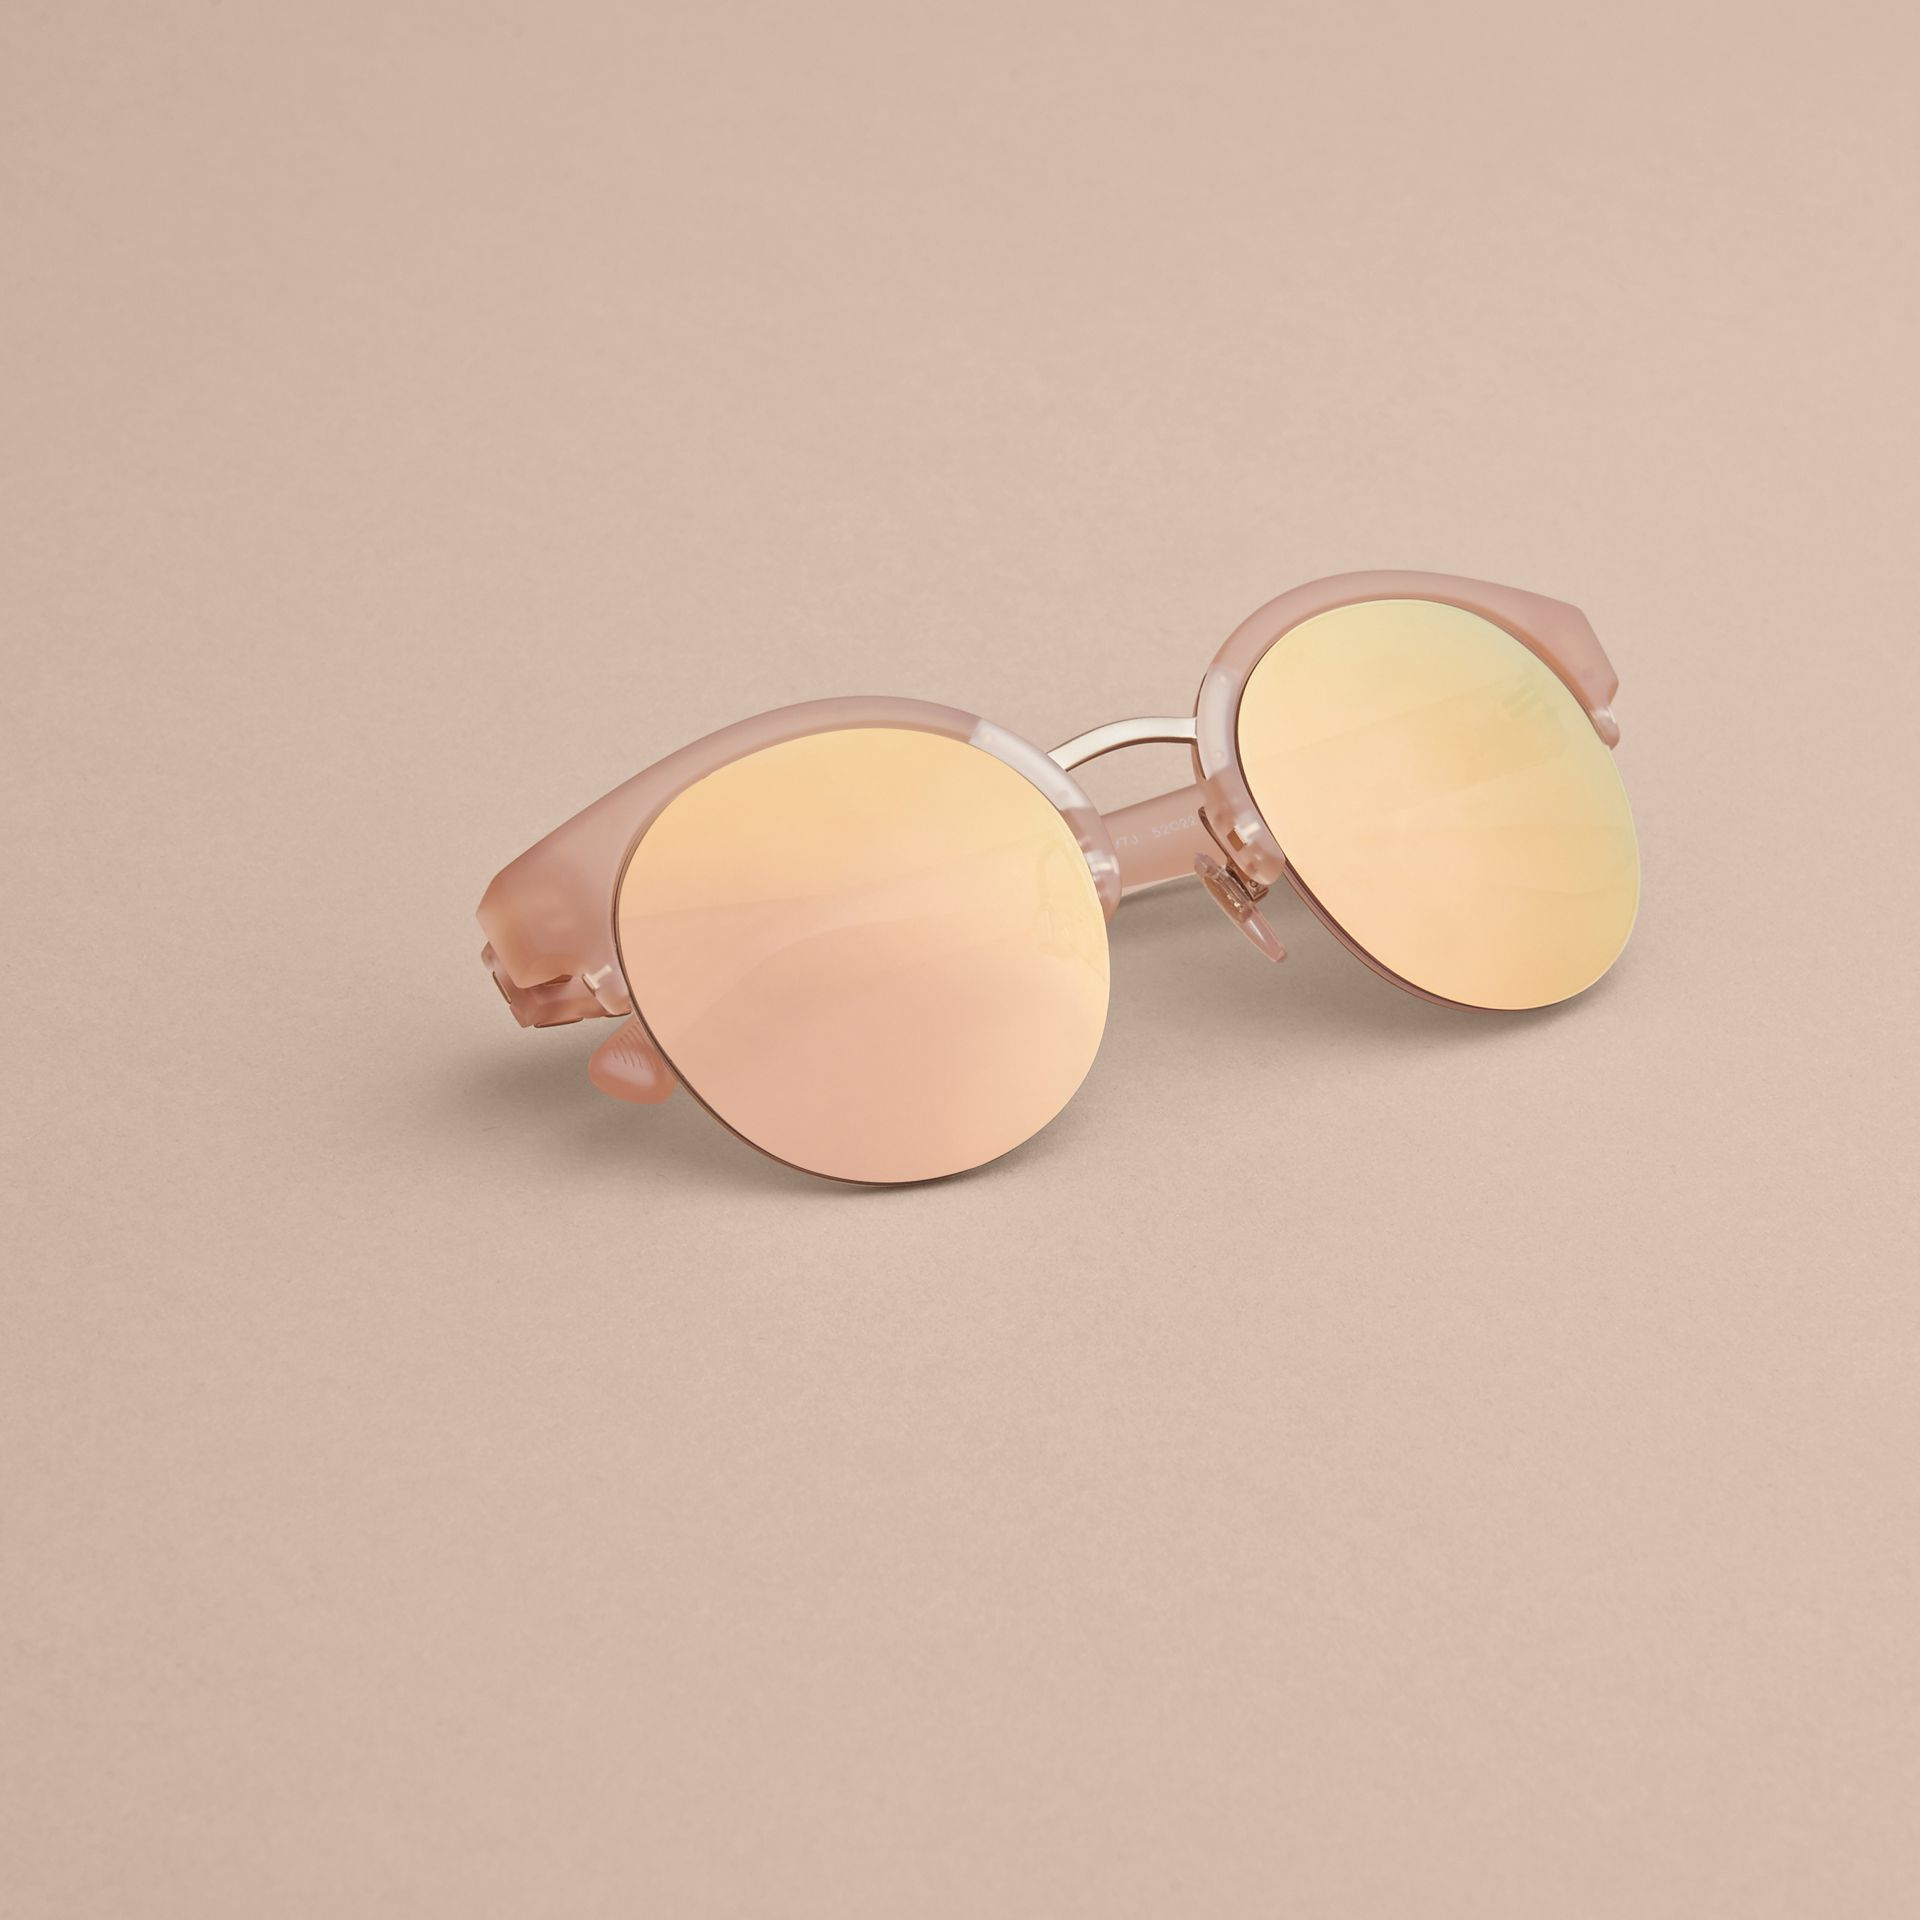 Check Detail Round Half-frame Sunglasses in Nude - Women | Burberry Singapore - gallery image 5